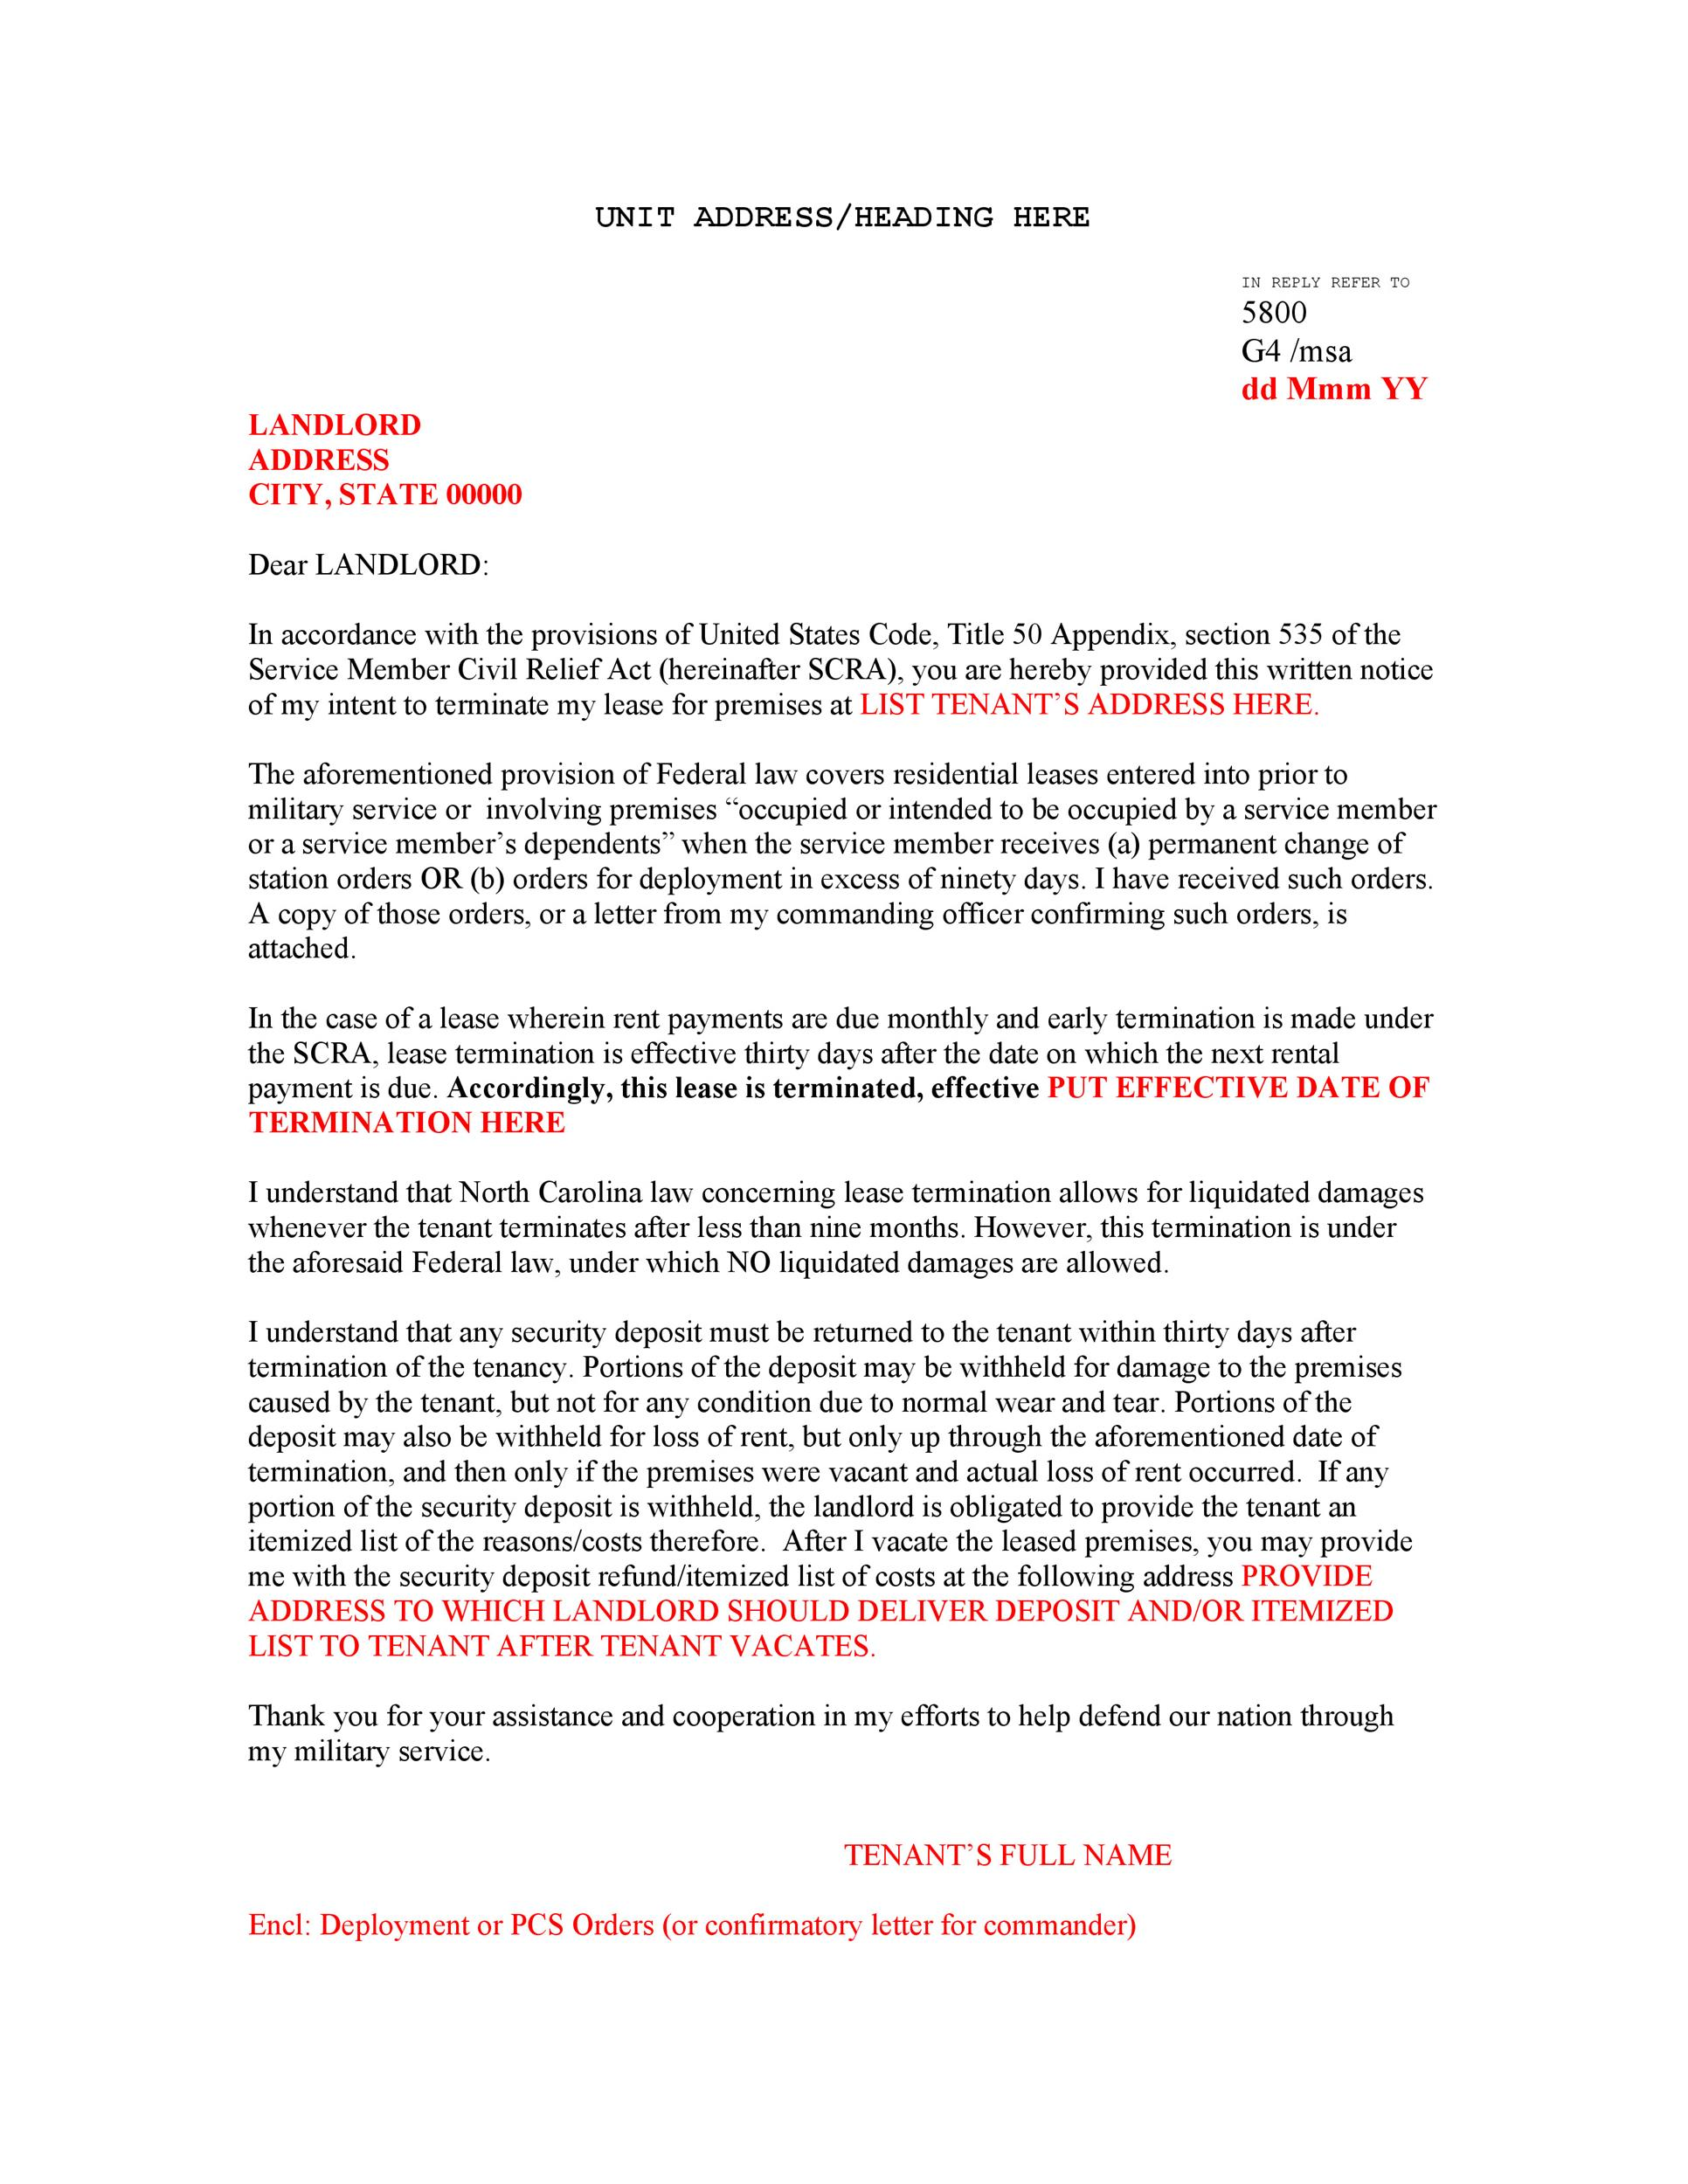 45 Eviction Notice Templates Lease Termination Letters – Eviction Notice Template Free